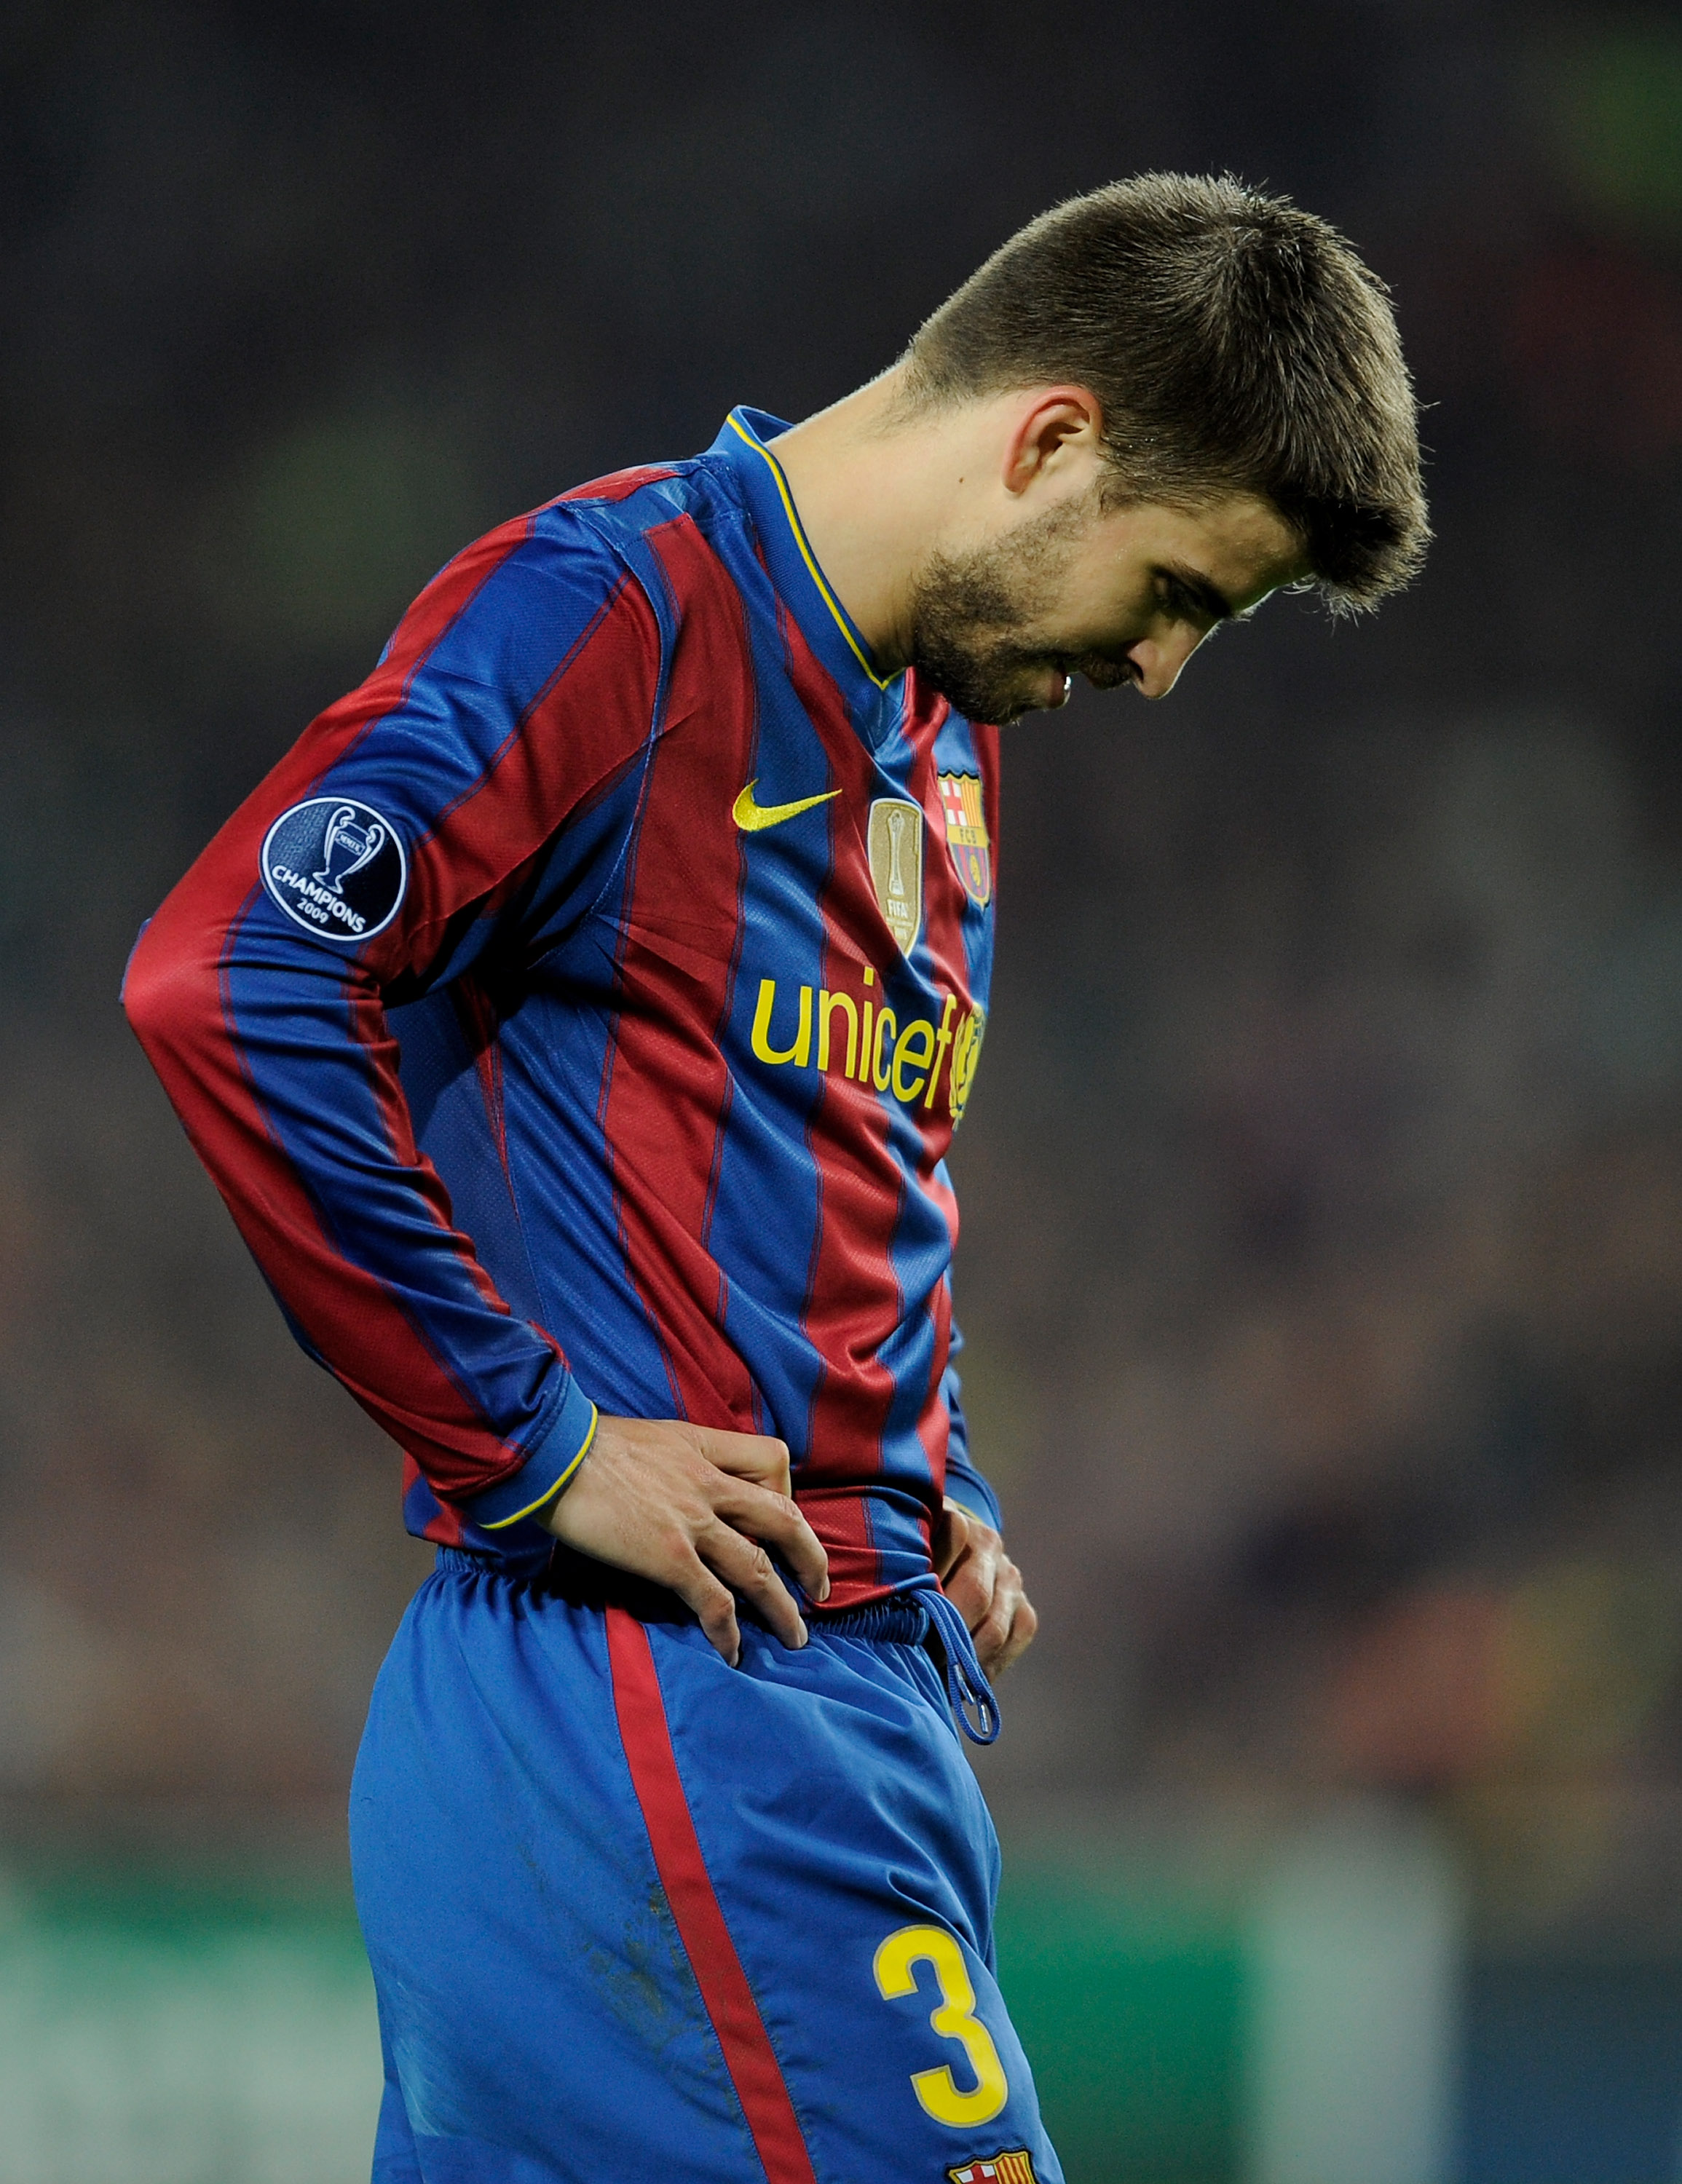 BARCELONA, SPAIN - APRIL 28:  Gerard Pique of Barcelona looks dejected during the UEFA Champions League Semi Final Second Leg match between Barcelona and Inter Milan at Camp Nou on April 28, 2010 in Barcelona, Spain.  (Photo by Michael Regan/Getty Images)